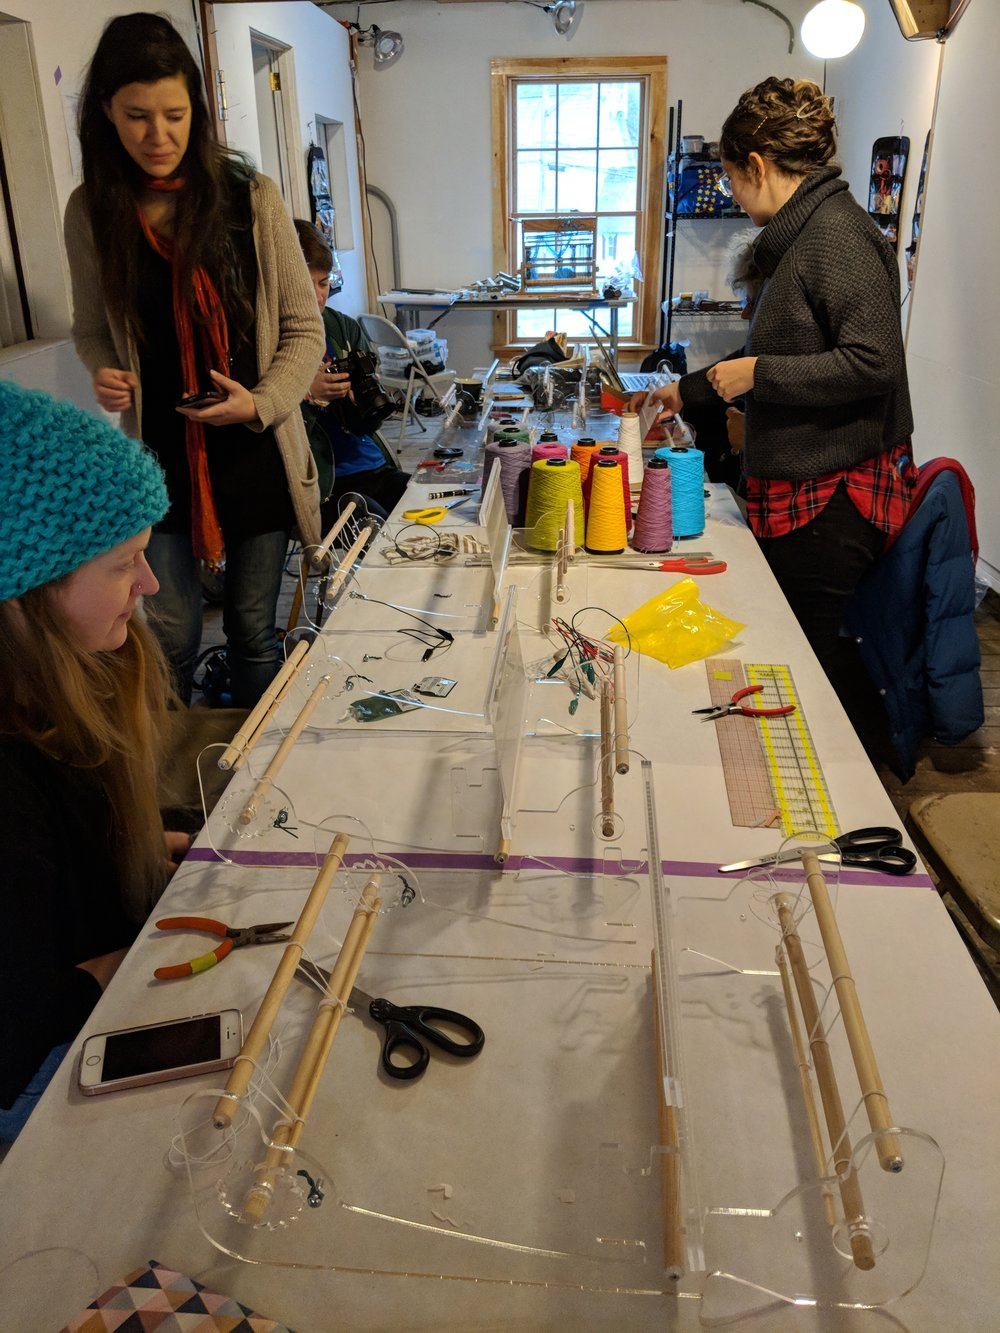 For the Weaving Intensive workshop, Sasha de Koninck, had prepared these laser cut rigid heddle looms that we got to play around with.